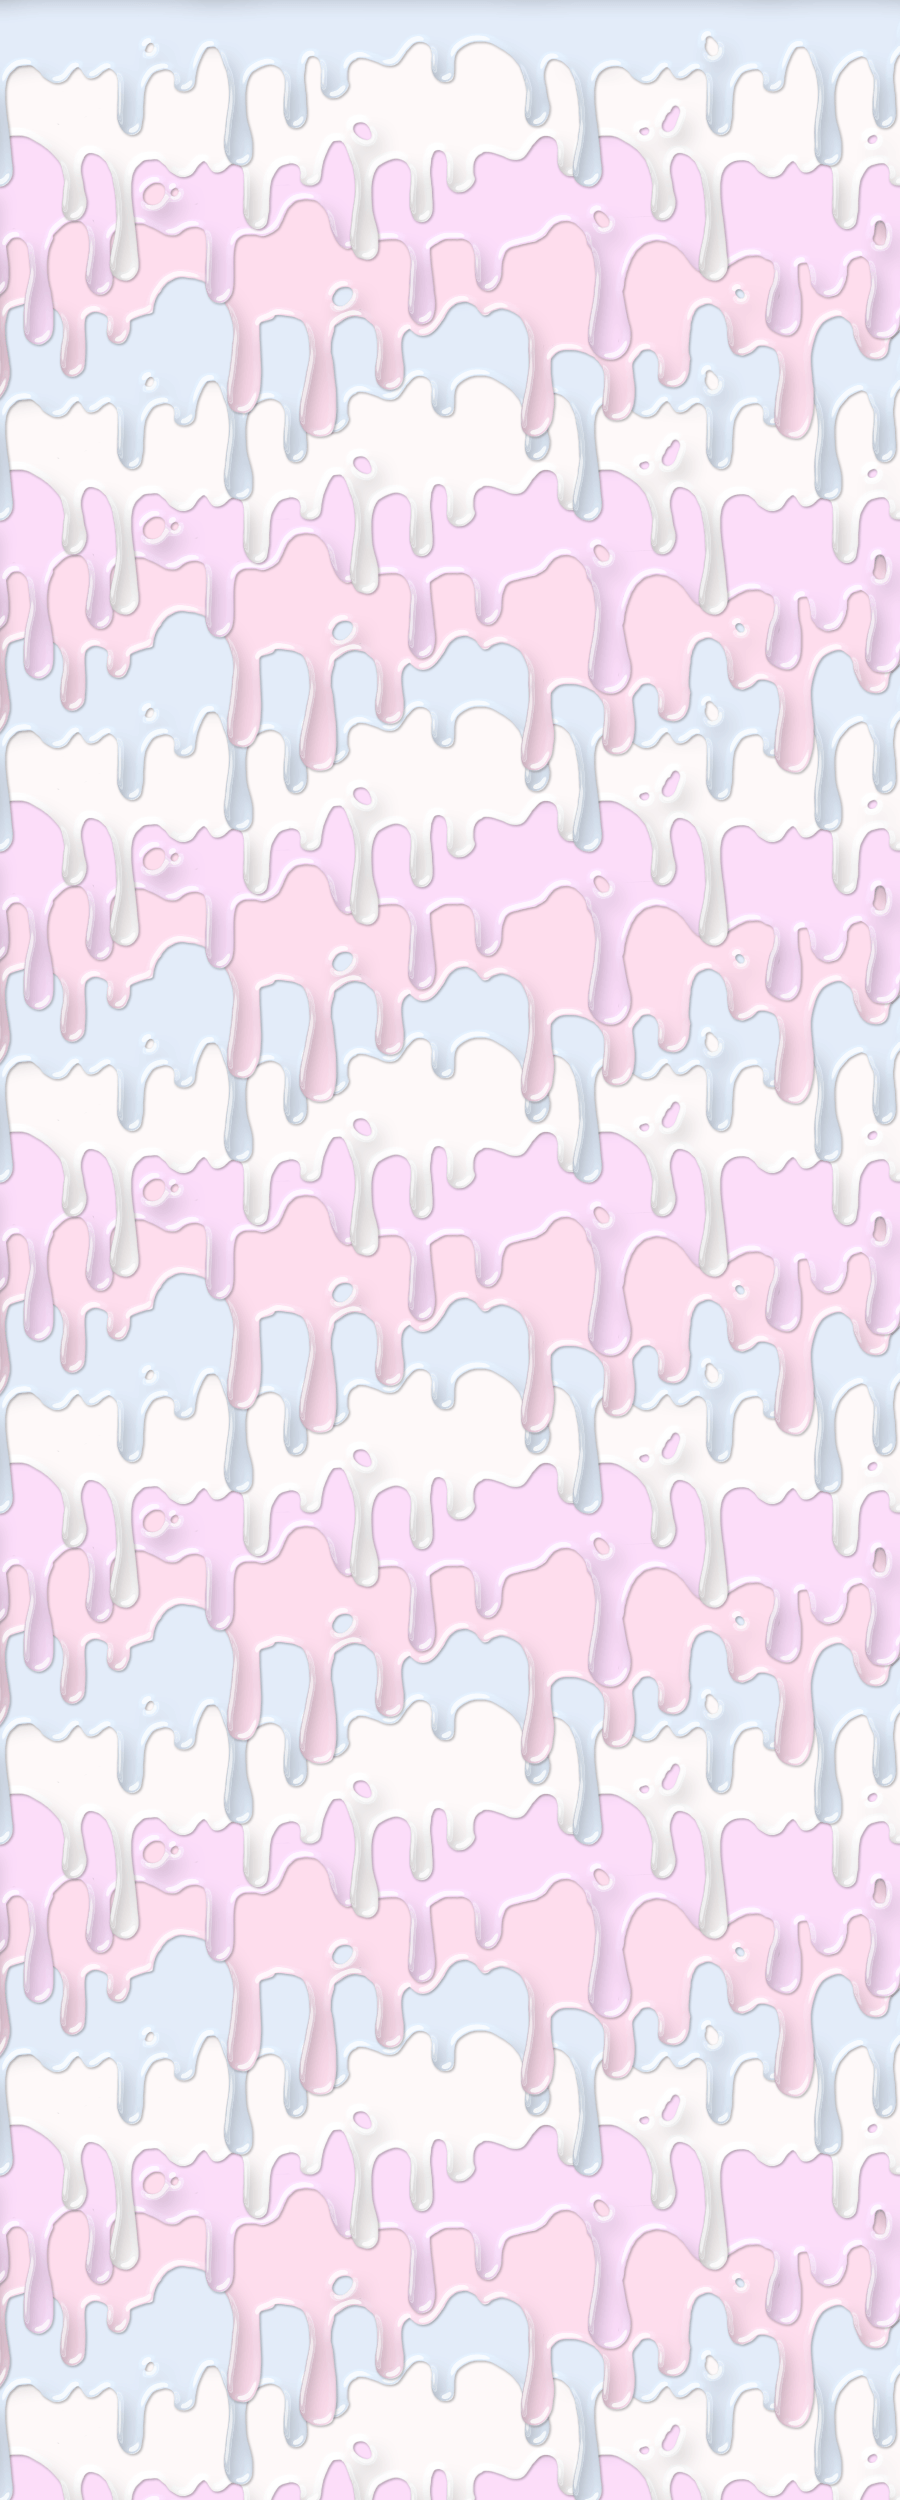 Pastel goth | Easter Wallpaper | Pinterest | Pastel goth, Pastels ...